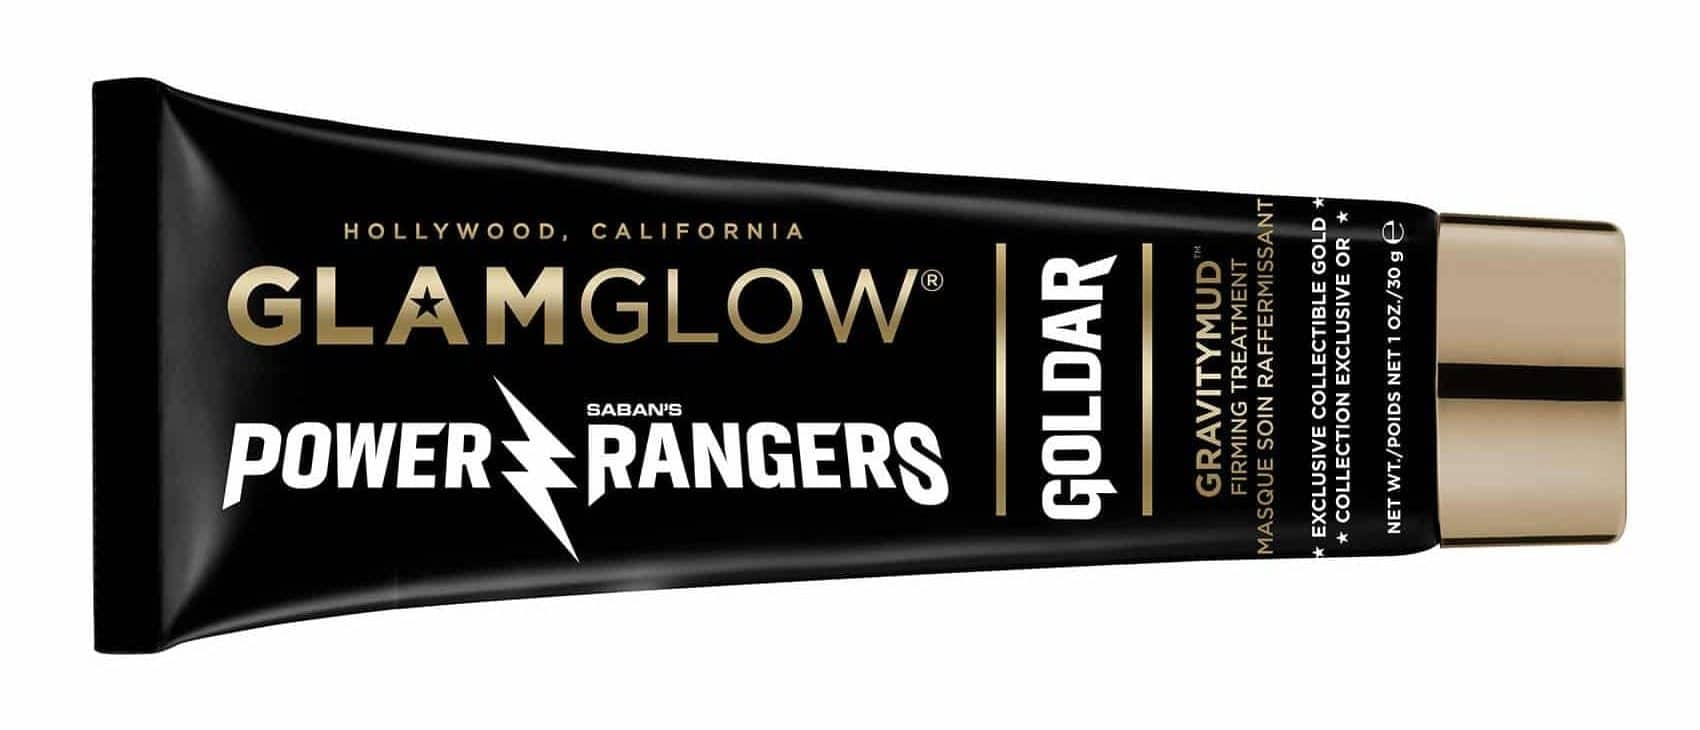 About Beauty GlamGlow Power Rangers1